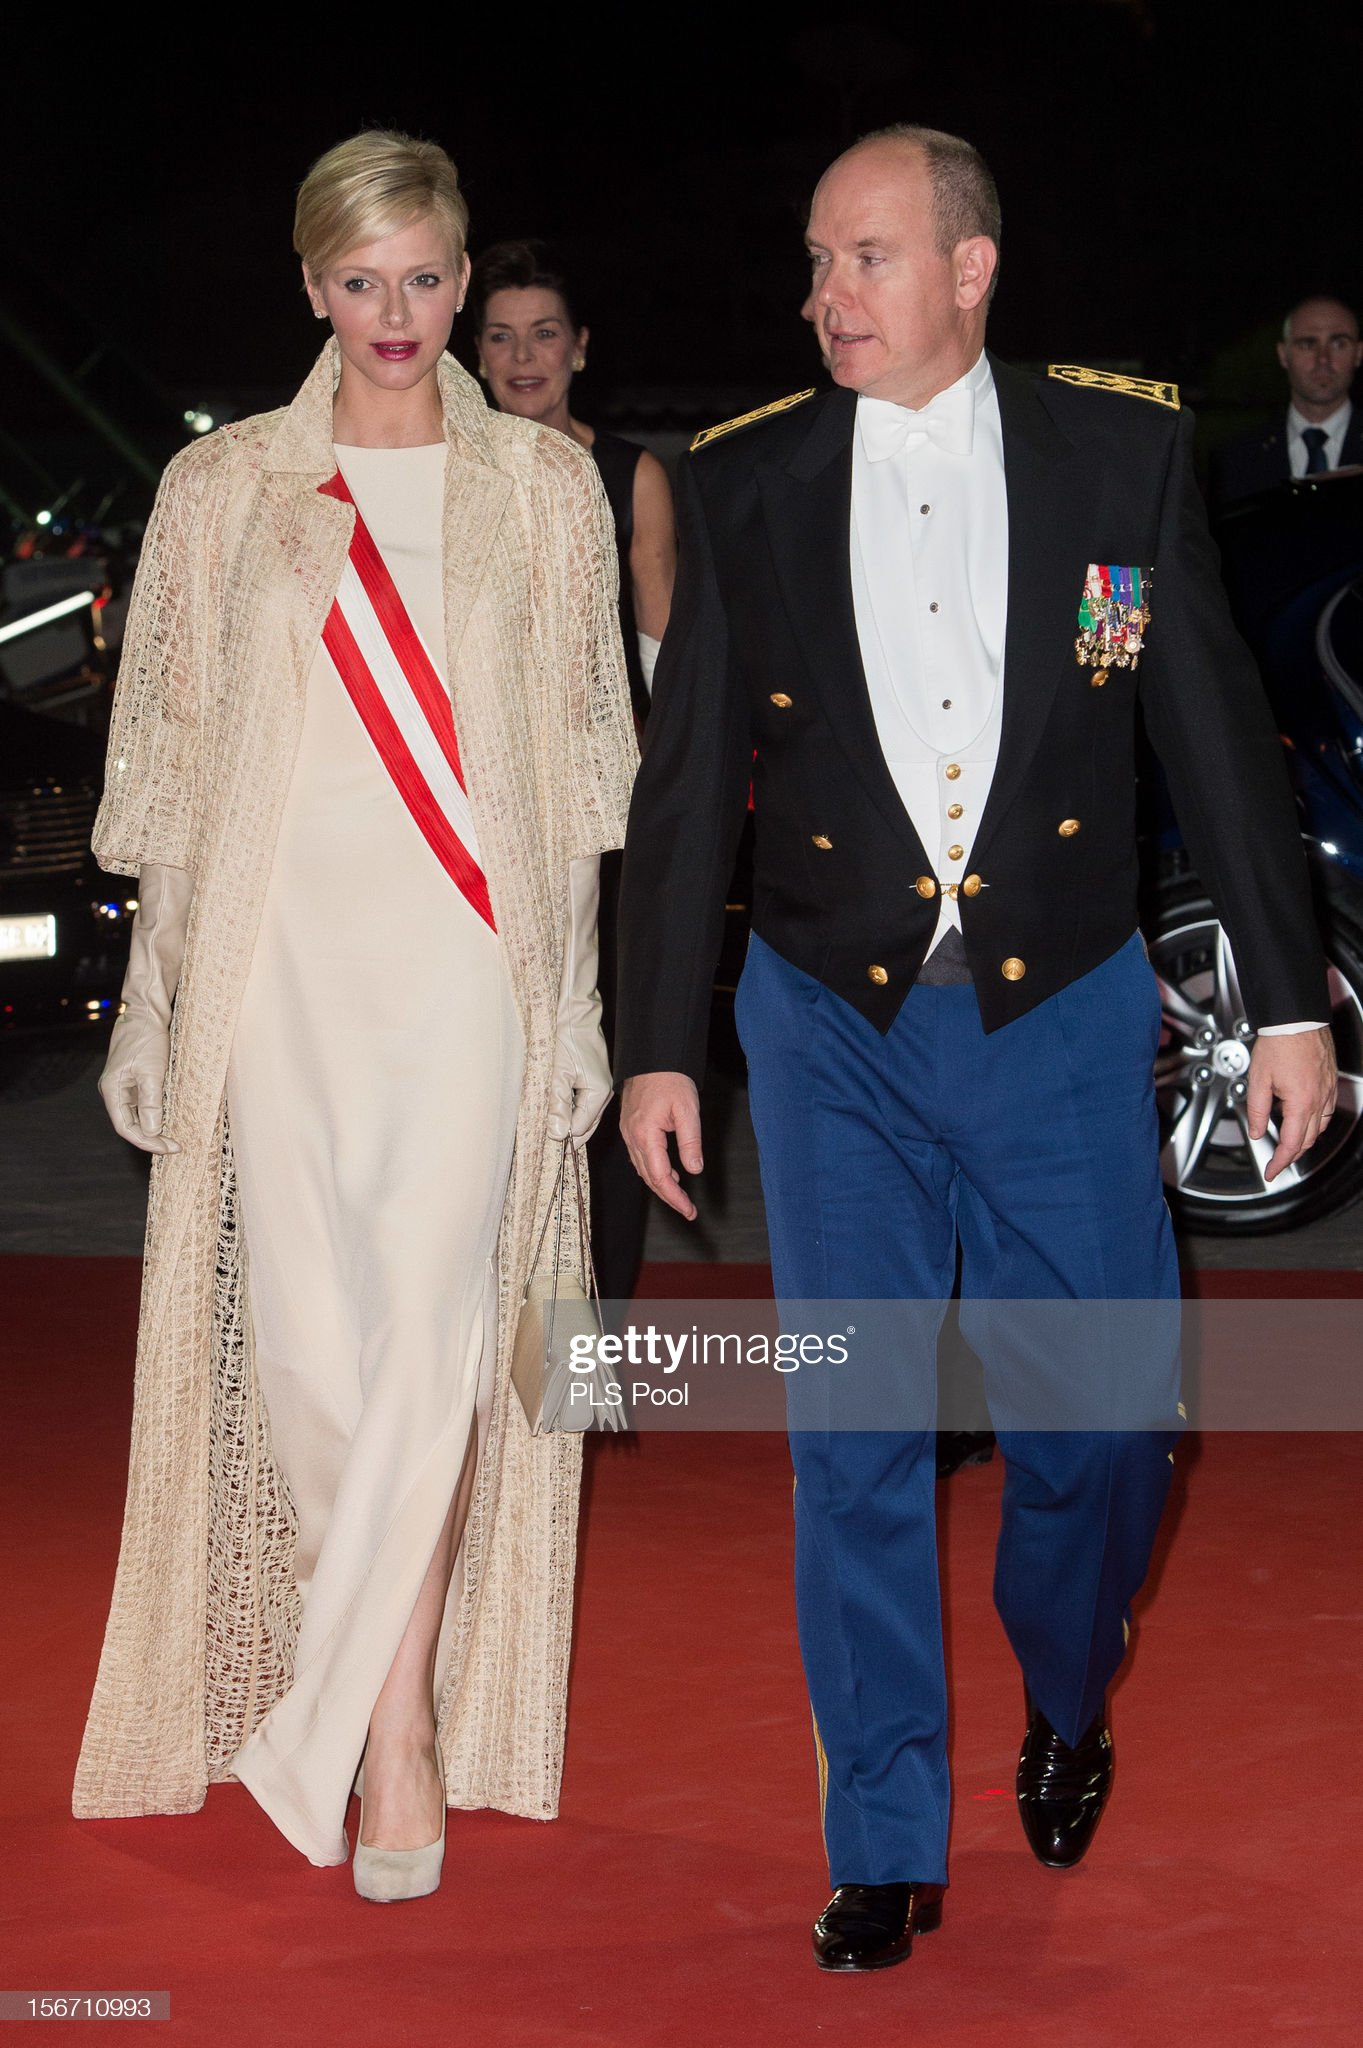 Monaco National Day 2012 - Gala Evening : News Photo